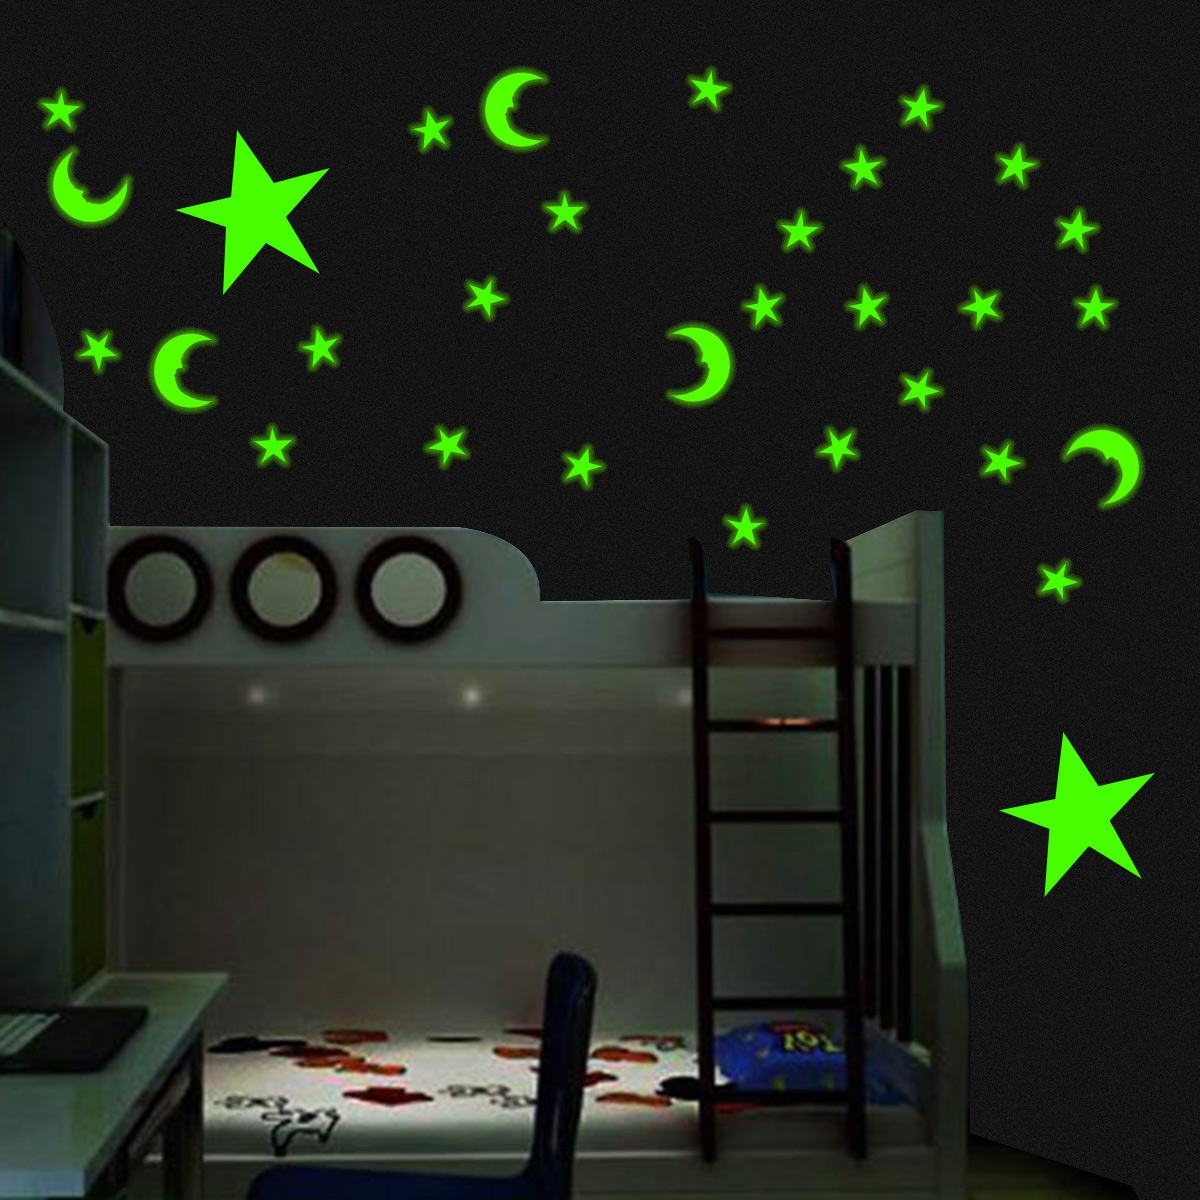 3D Glow In The Dark Glow Stickers Colorful Starry Sky Luminous Fluorescent Star Night Light Switch Wall Stickers For Kids Room